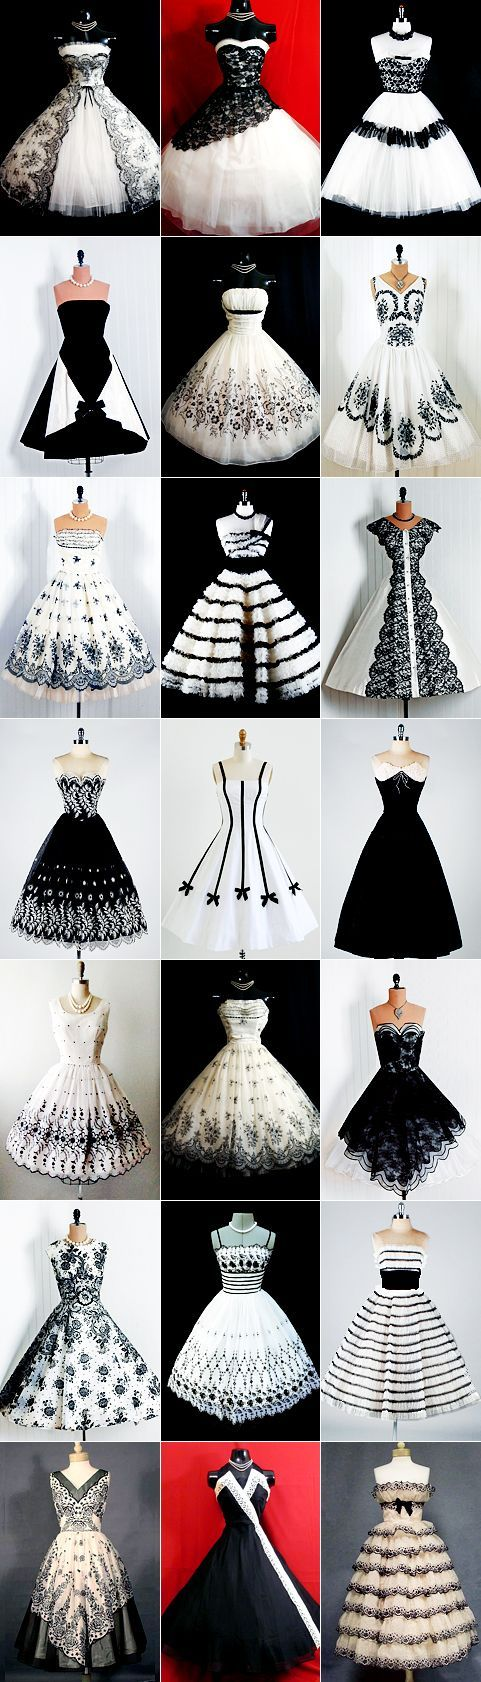 1950s Cocktail and party dresses